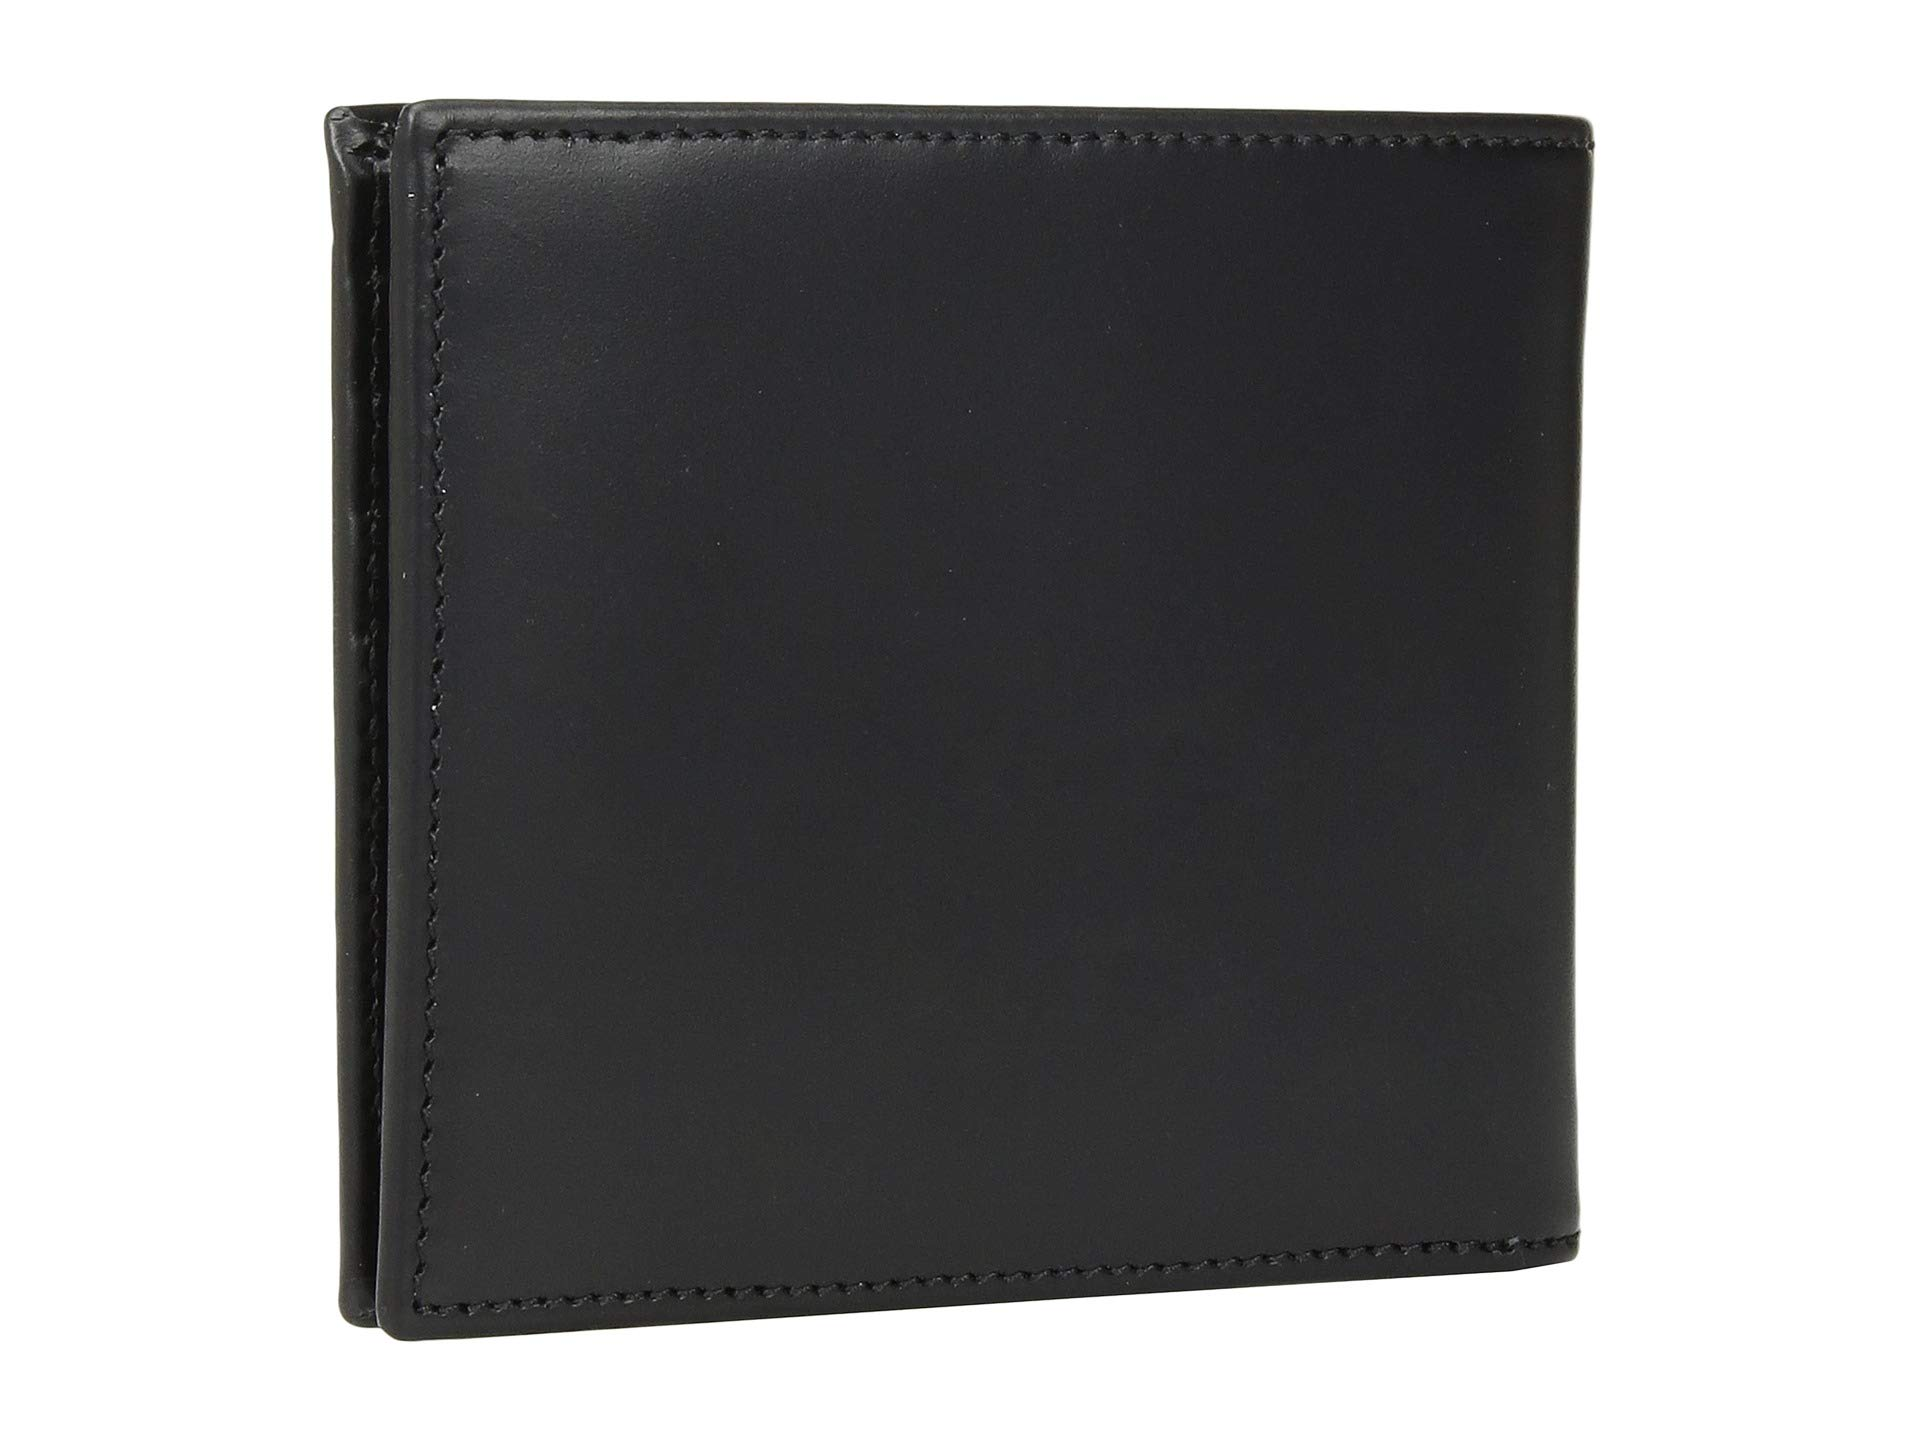 Paul Wallet Billfold Black Multistripe Smith Ctwr7nqtx0